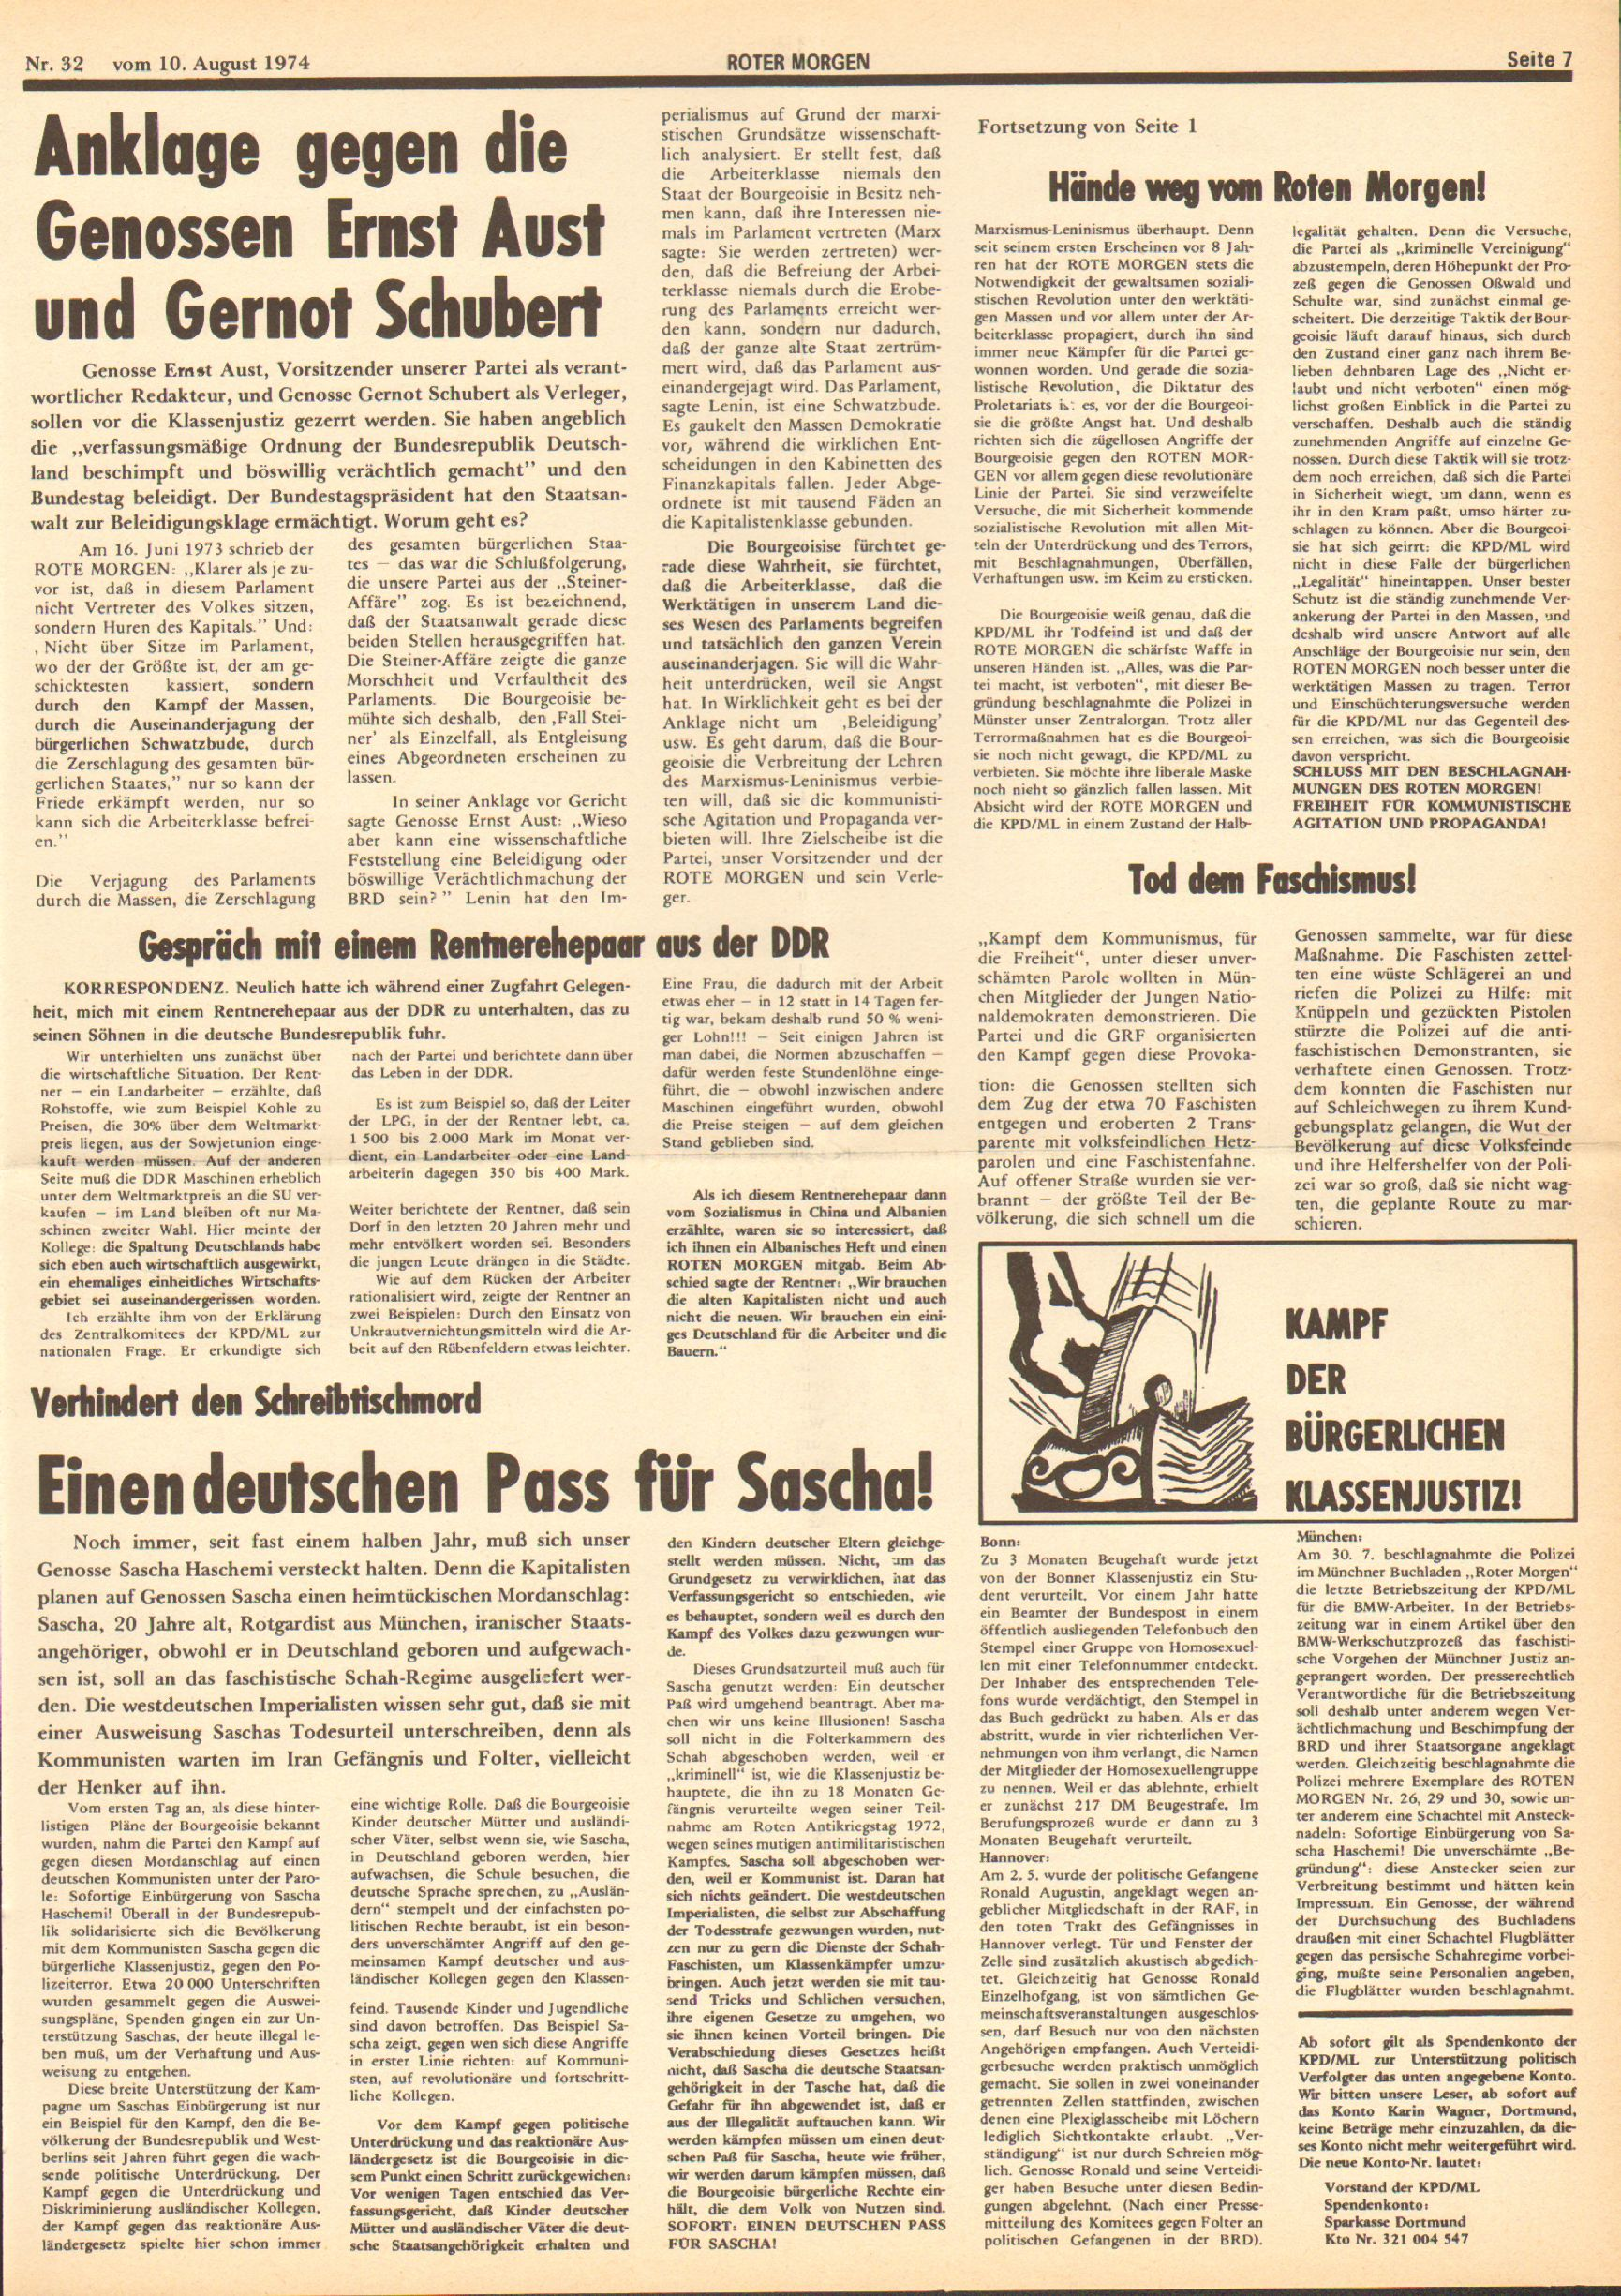 Roter Morgen, 8. Jg., 10. August 1974, Nr. 32, Seite 7